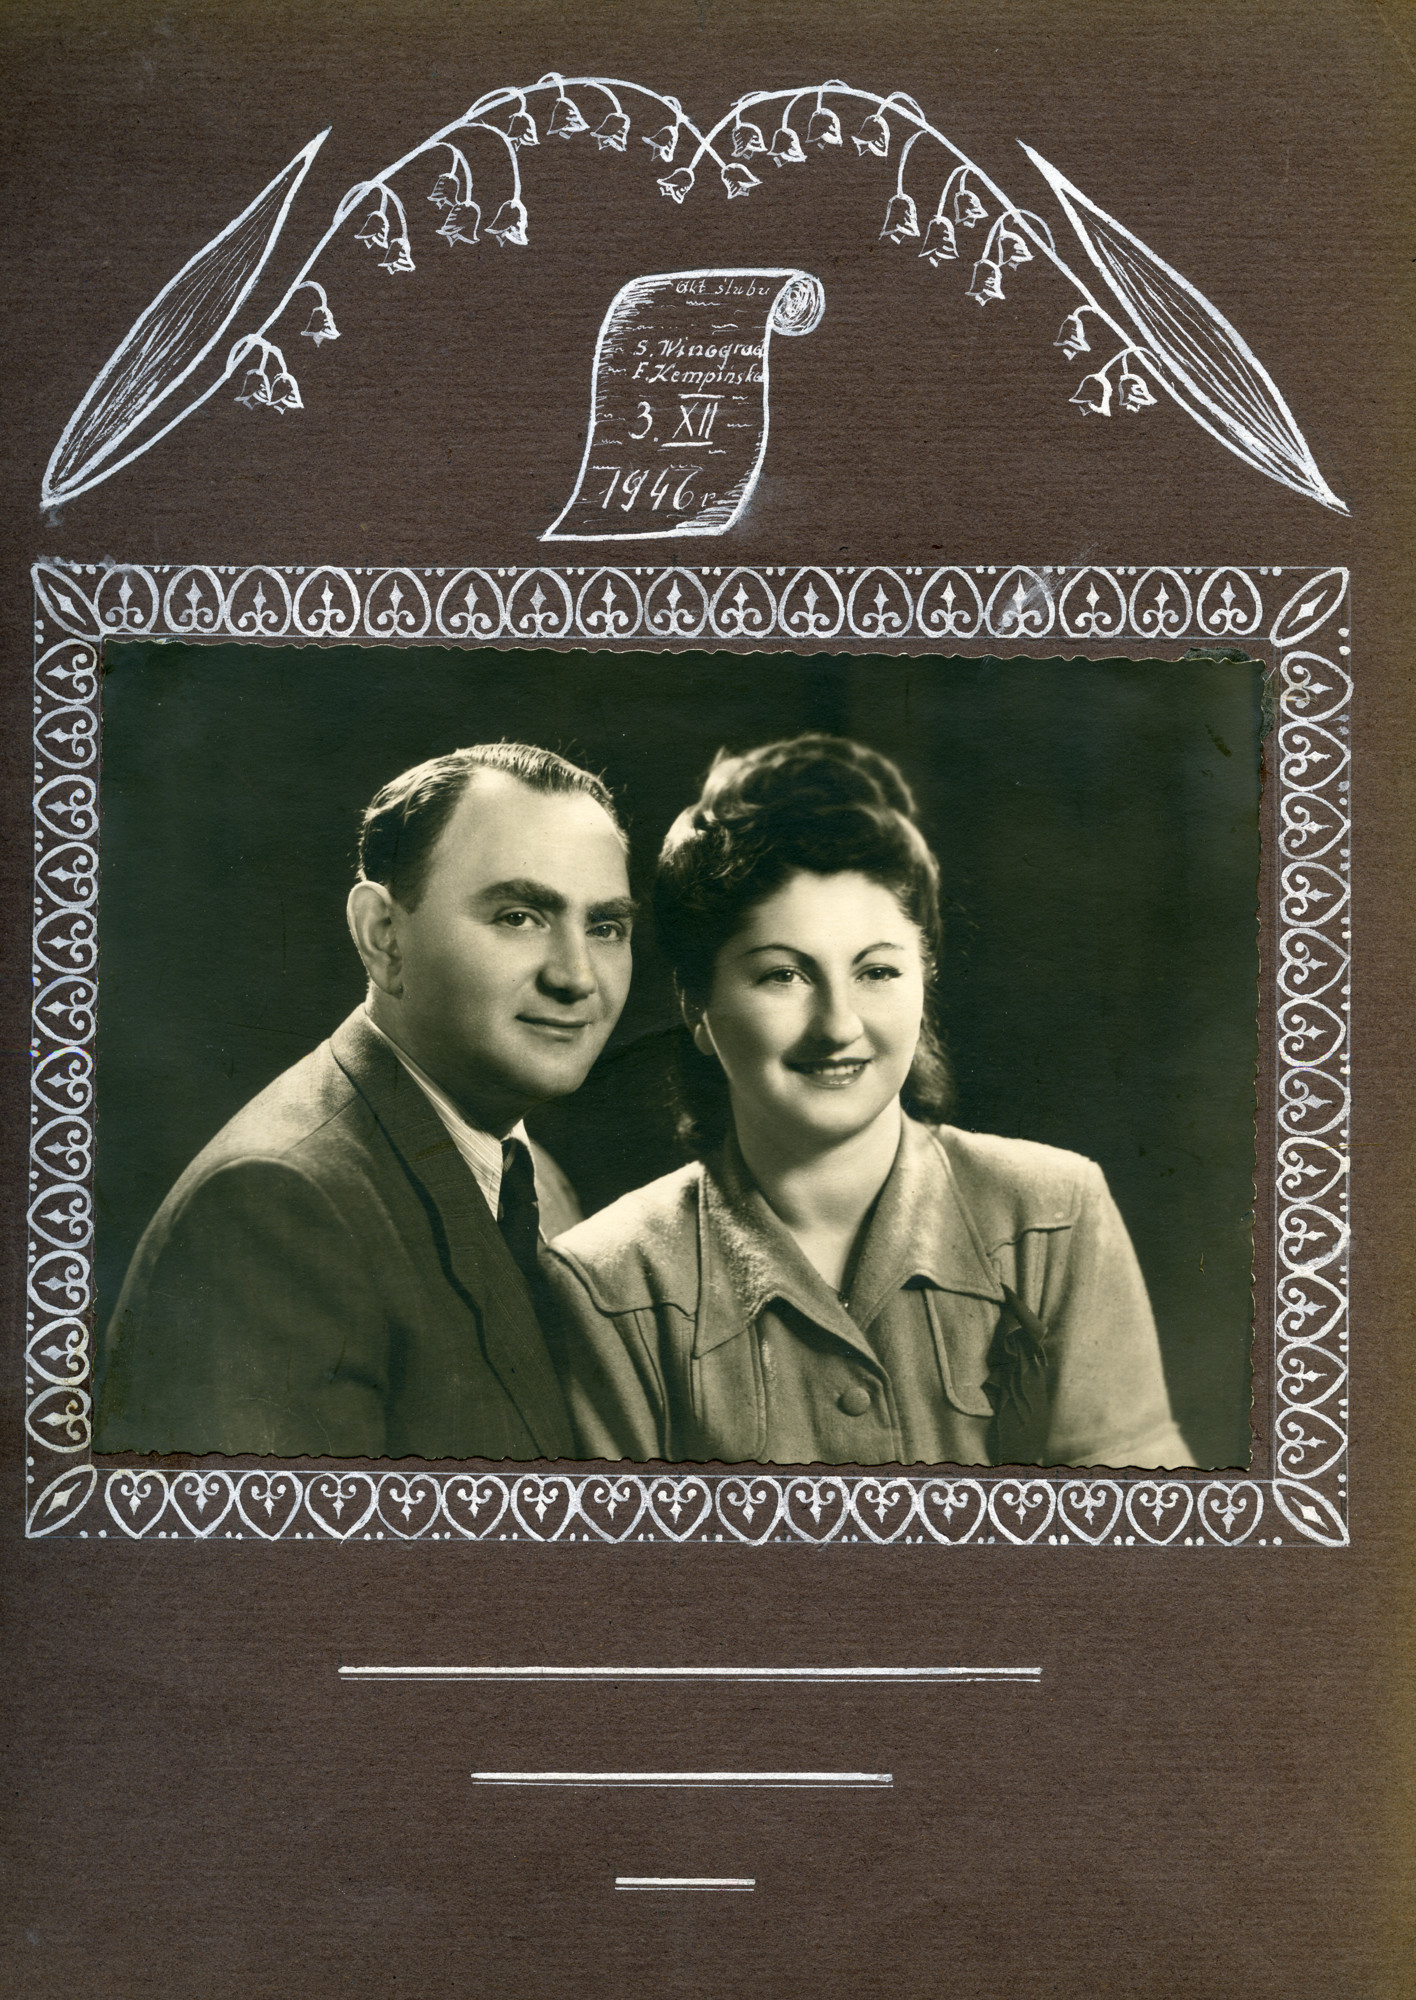 Photo album page with a studio portrait of Franka (nee Kempinski) and Sewek Winograd after the war